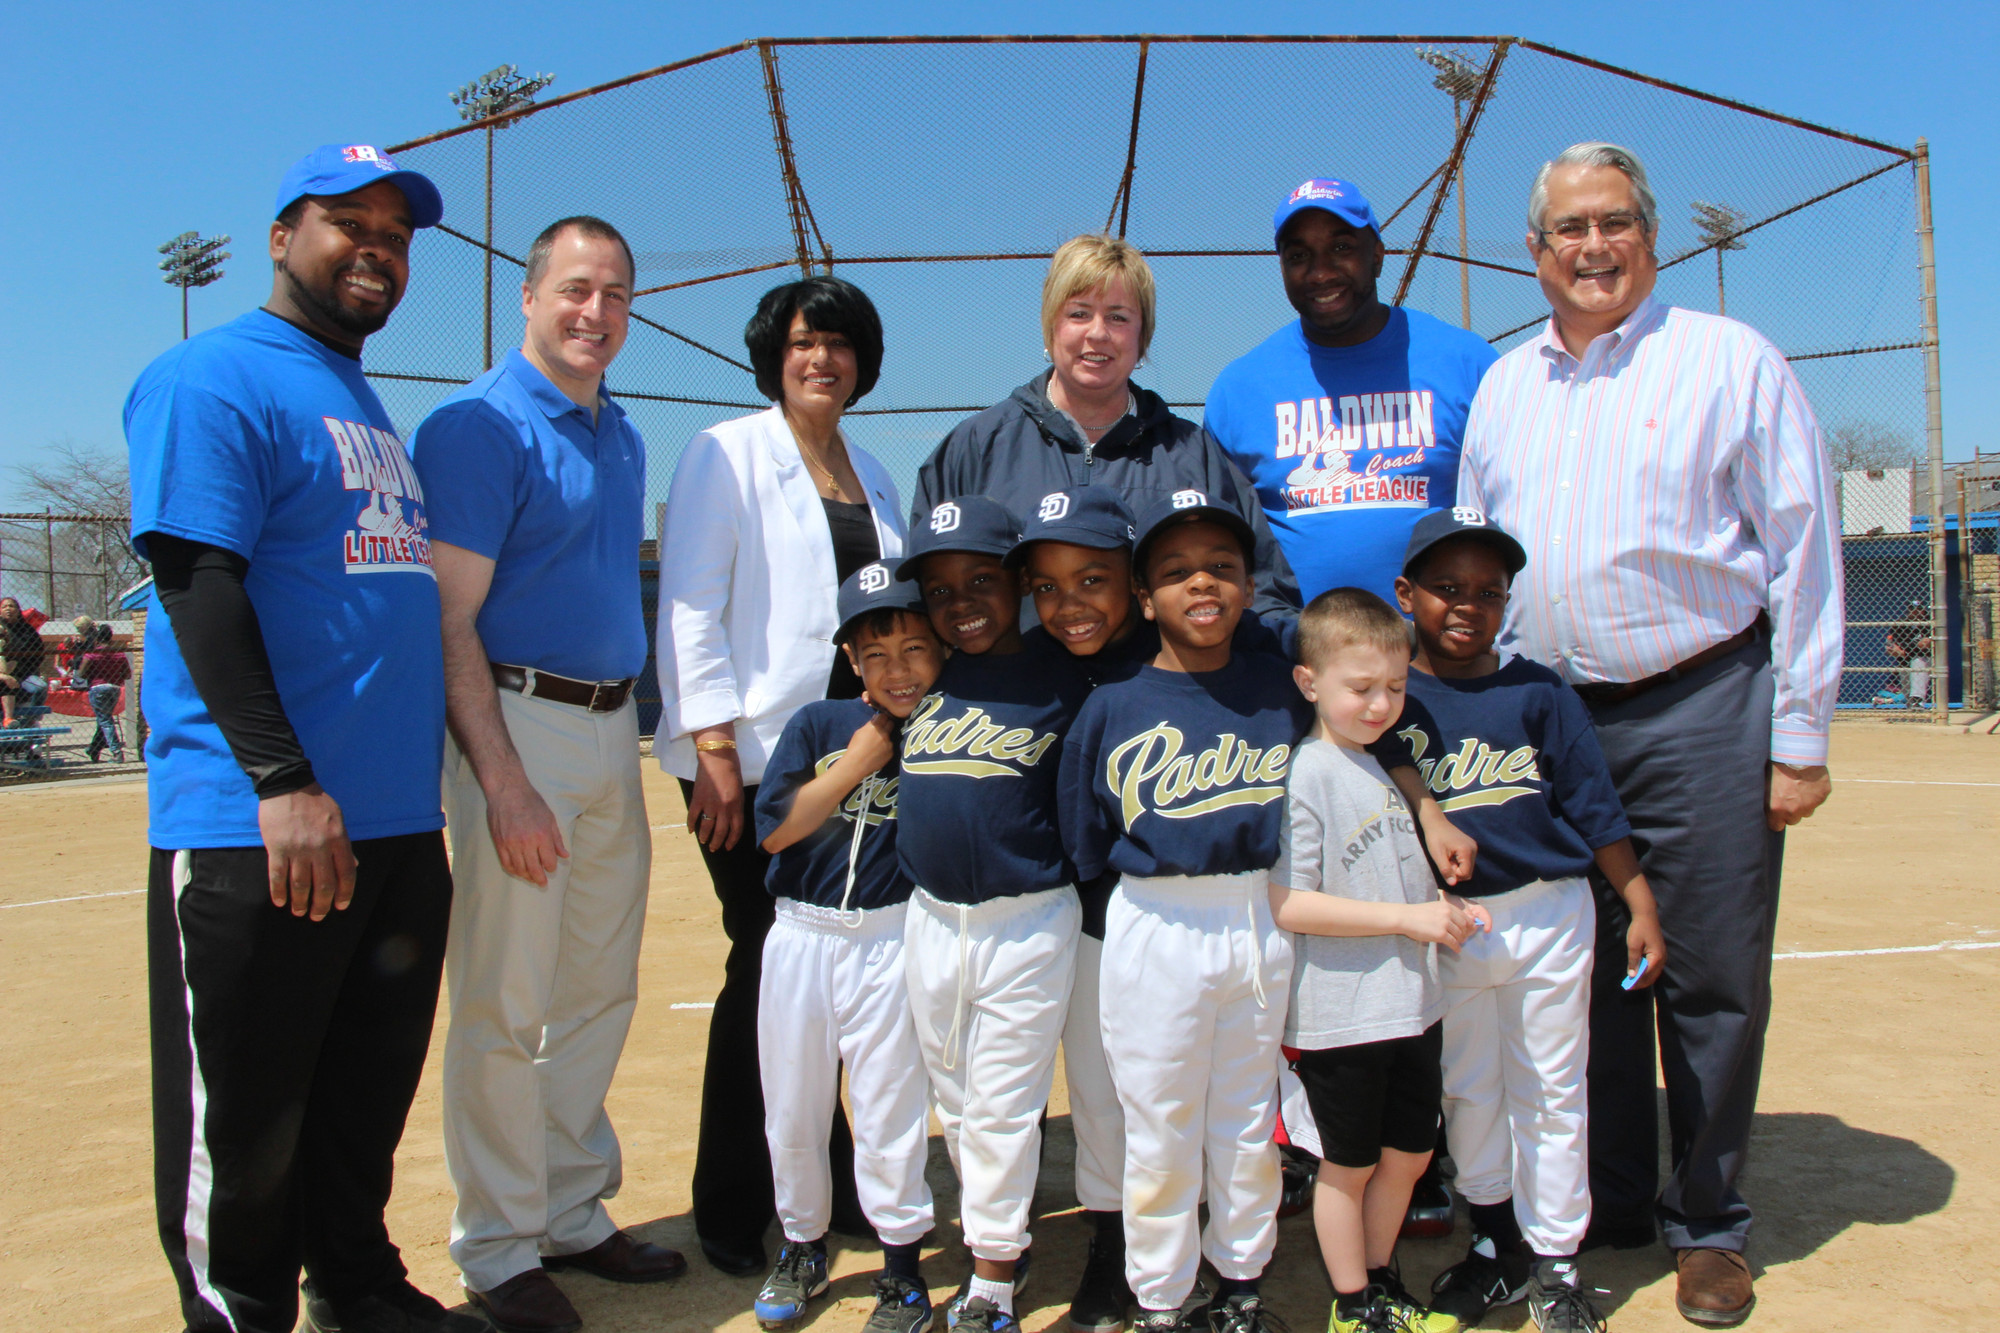 Baldwin Little League held its annual Opening Day cermonies on May 3 at Baldwin Park and it was quite the success, with a large turnout and sunny skies. Pictured from the Padres, a team of 6 and 7 year olds, were, from left. Garri Williams Jr., Cameron Myles, Luke Freymann, Benjamin Addzi, Jordon Andreula and Jayden Johnson. The back row from left is coach Garris Williams,  Assemblyman Brian Curran, Town of Hempstead Clerk Nasrin Ahmad, Town of Hempstead Supervisor Kate Murray, coach Lateef Williams and Town of Hempstead Councilman Anthony Santino.